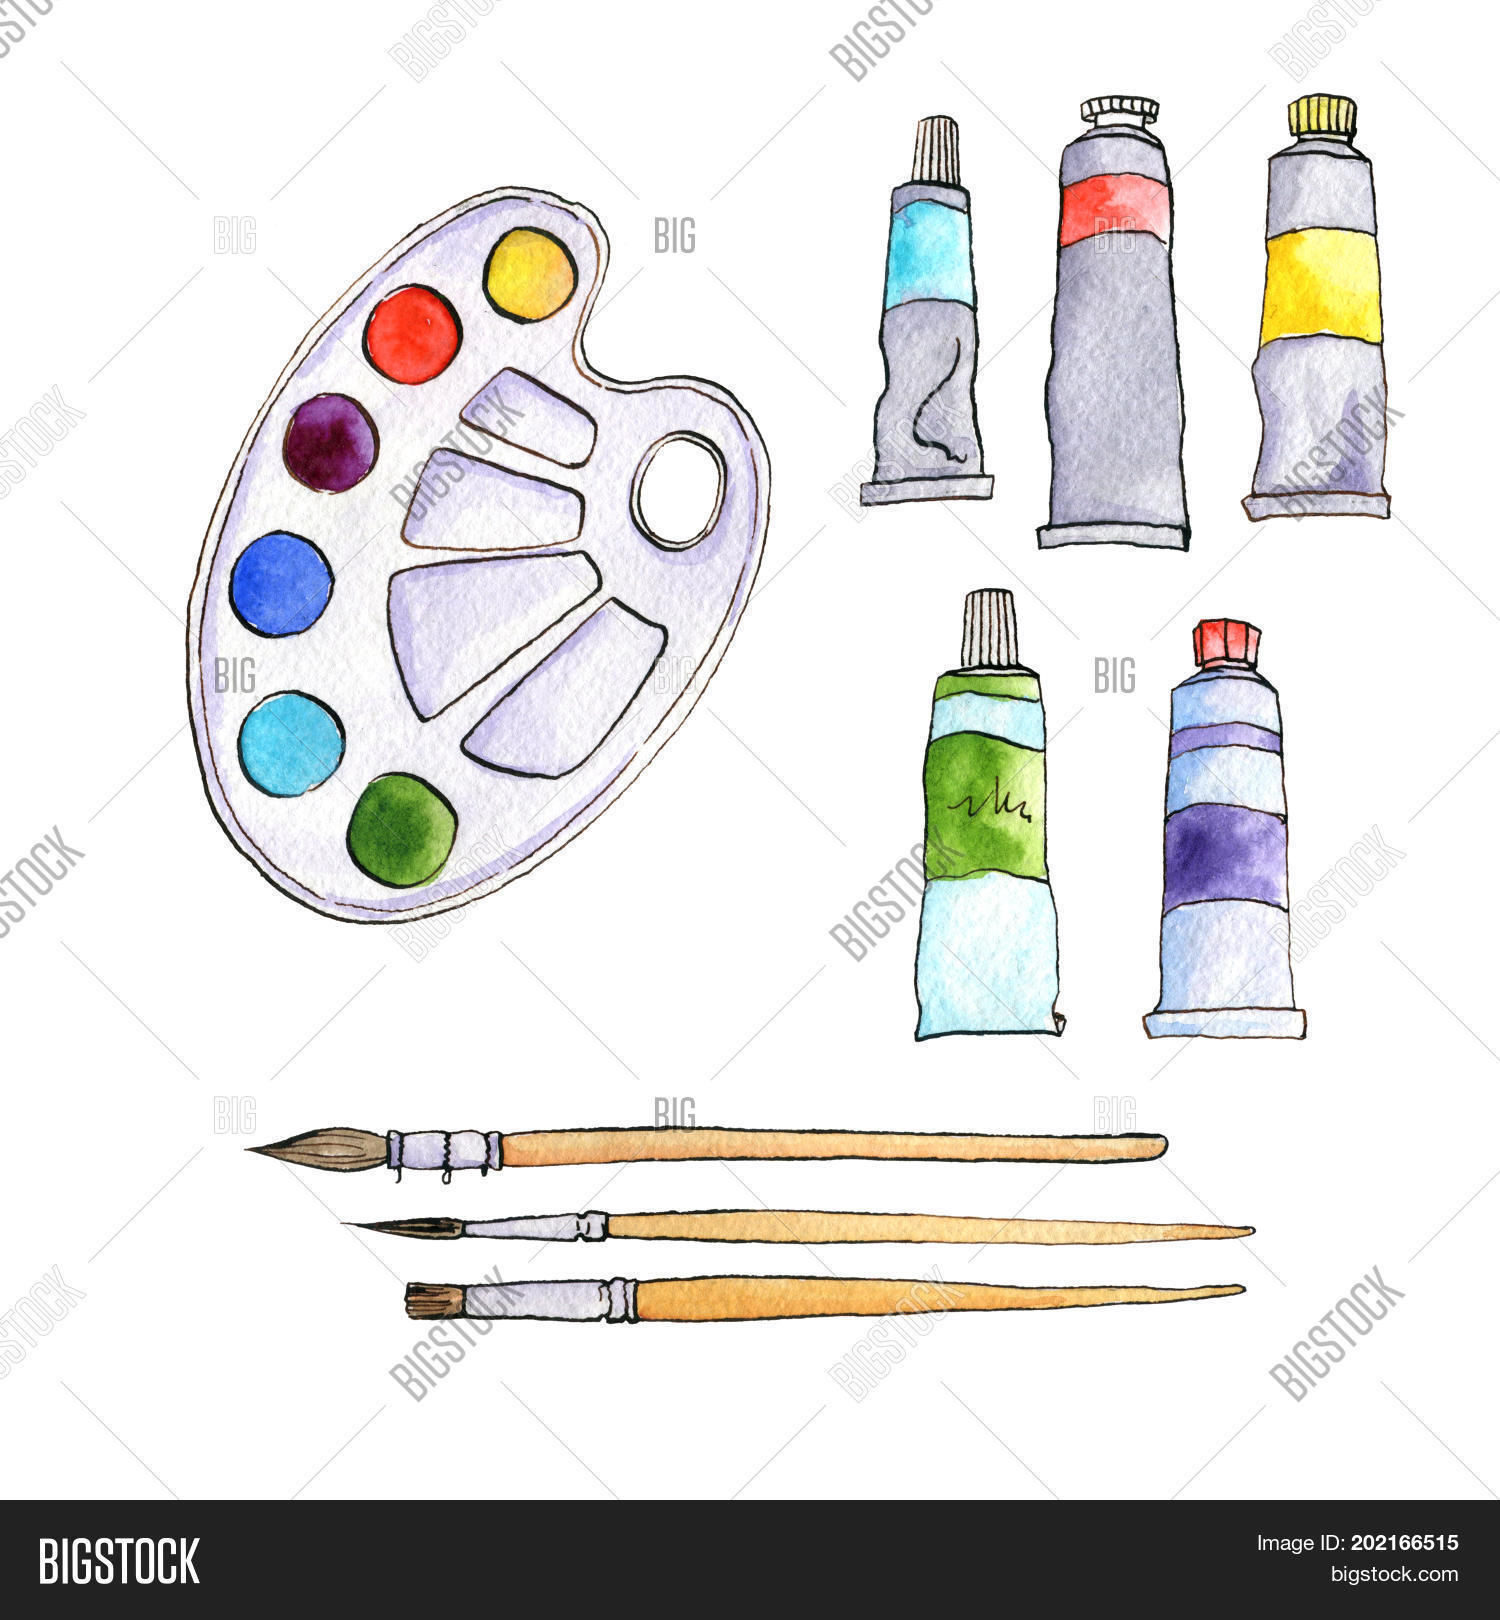 acrylic,art,artist,artistic,bristle,brush,calligraphy,color,craft,craftsman,creative,decoration,design,doodle,drawing,drawn,gouache,graphic,grapphic,grunge,hand,ink,isolated,line,linear,materials,oil,paint,paintbrush,paper,pencil,pictorial,school,sketch,squirrel,stationery,supplies,symbol,synthetic,tassel,template,tool,tube,watercolor